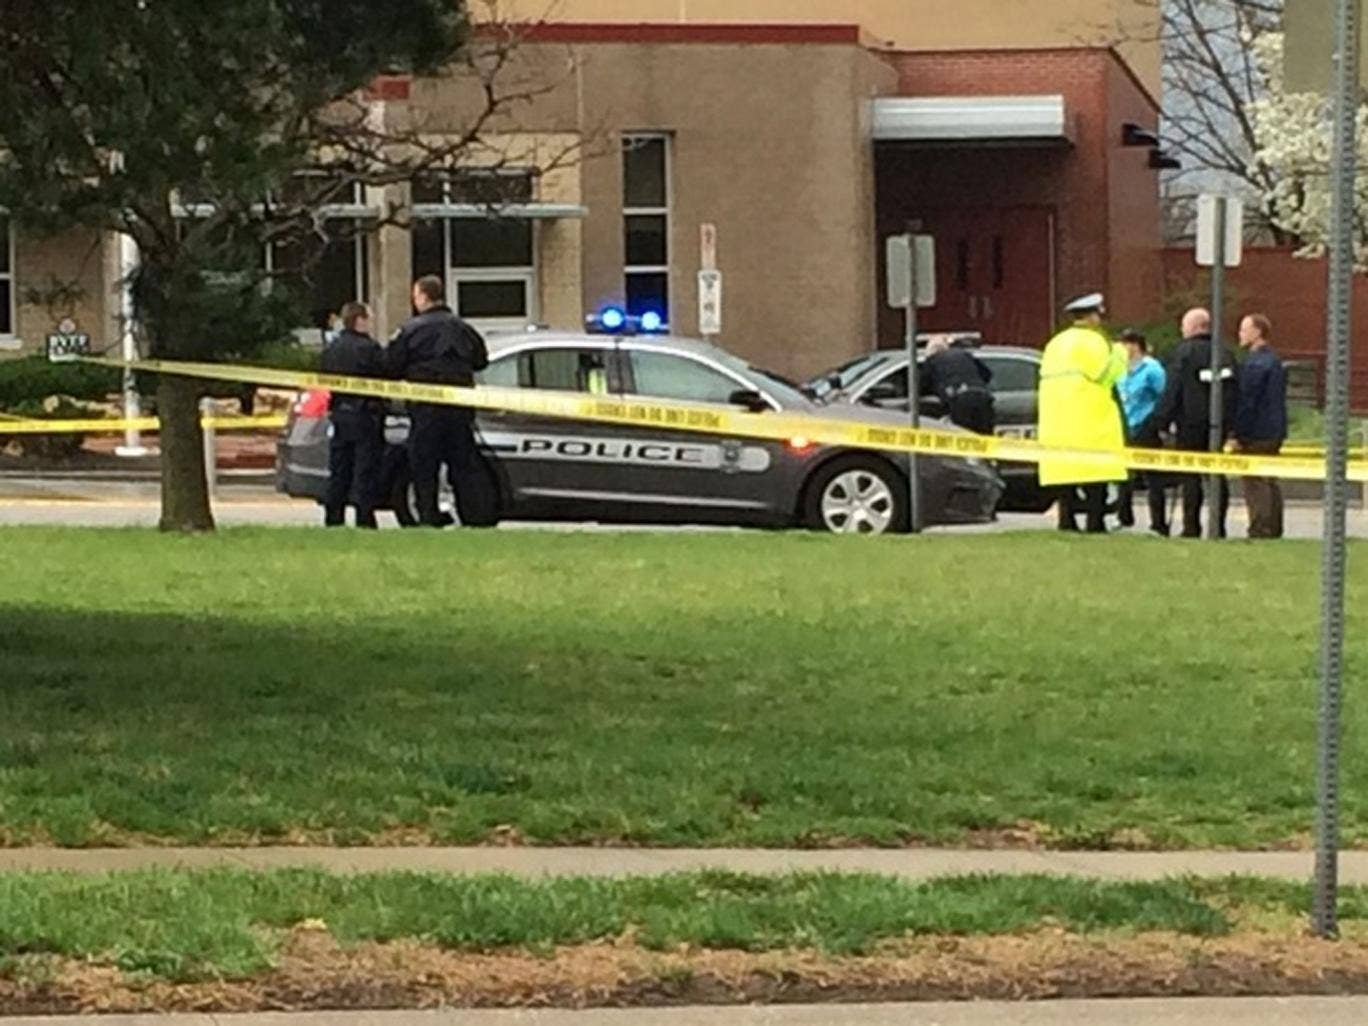 Authorities respond to the Jewish community center after a shooting in Overland Park